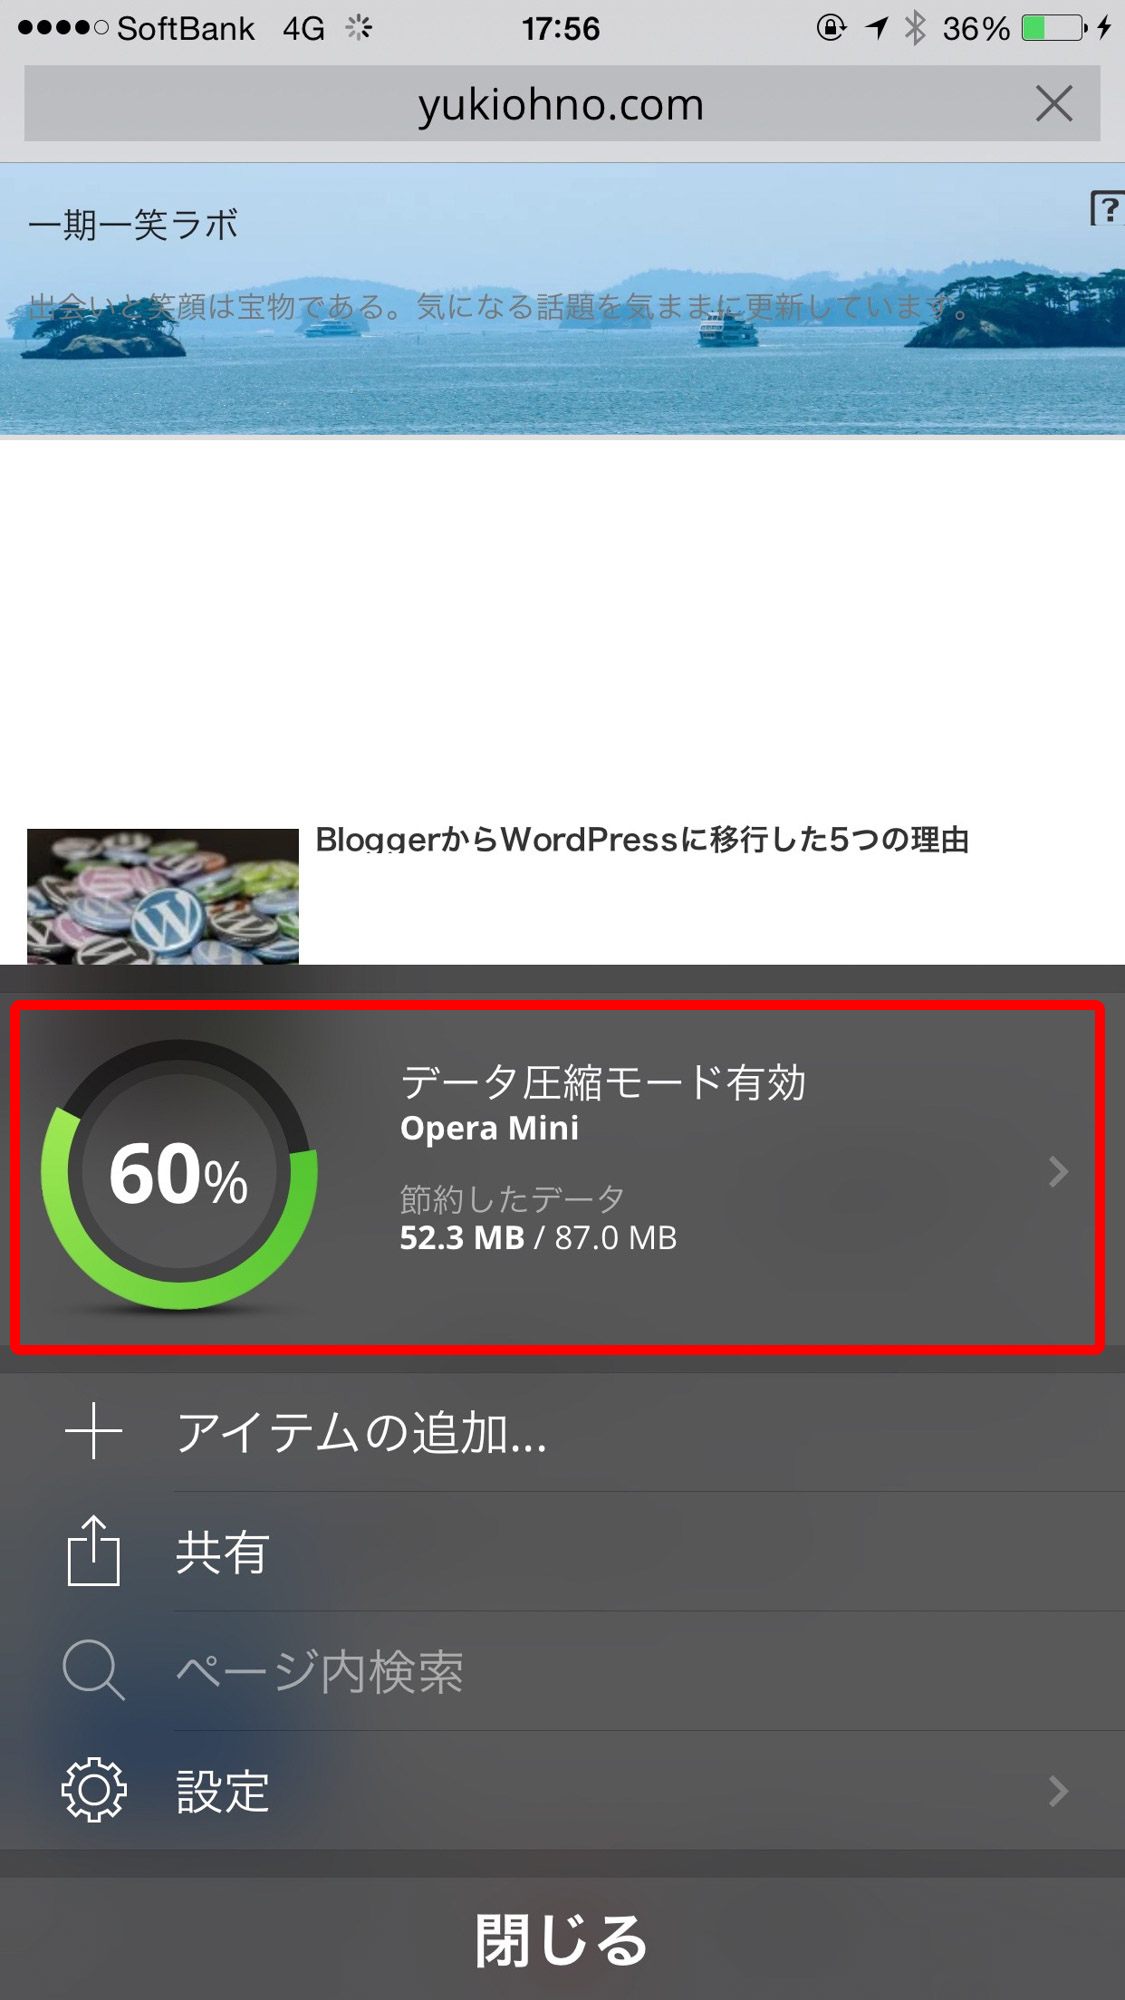 browser-wp-4253